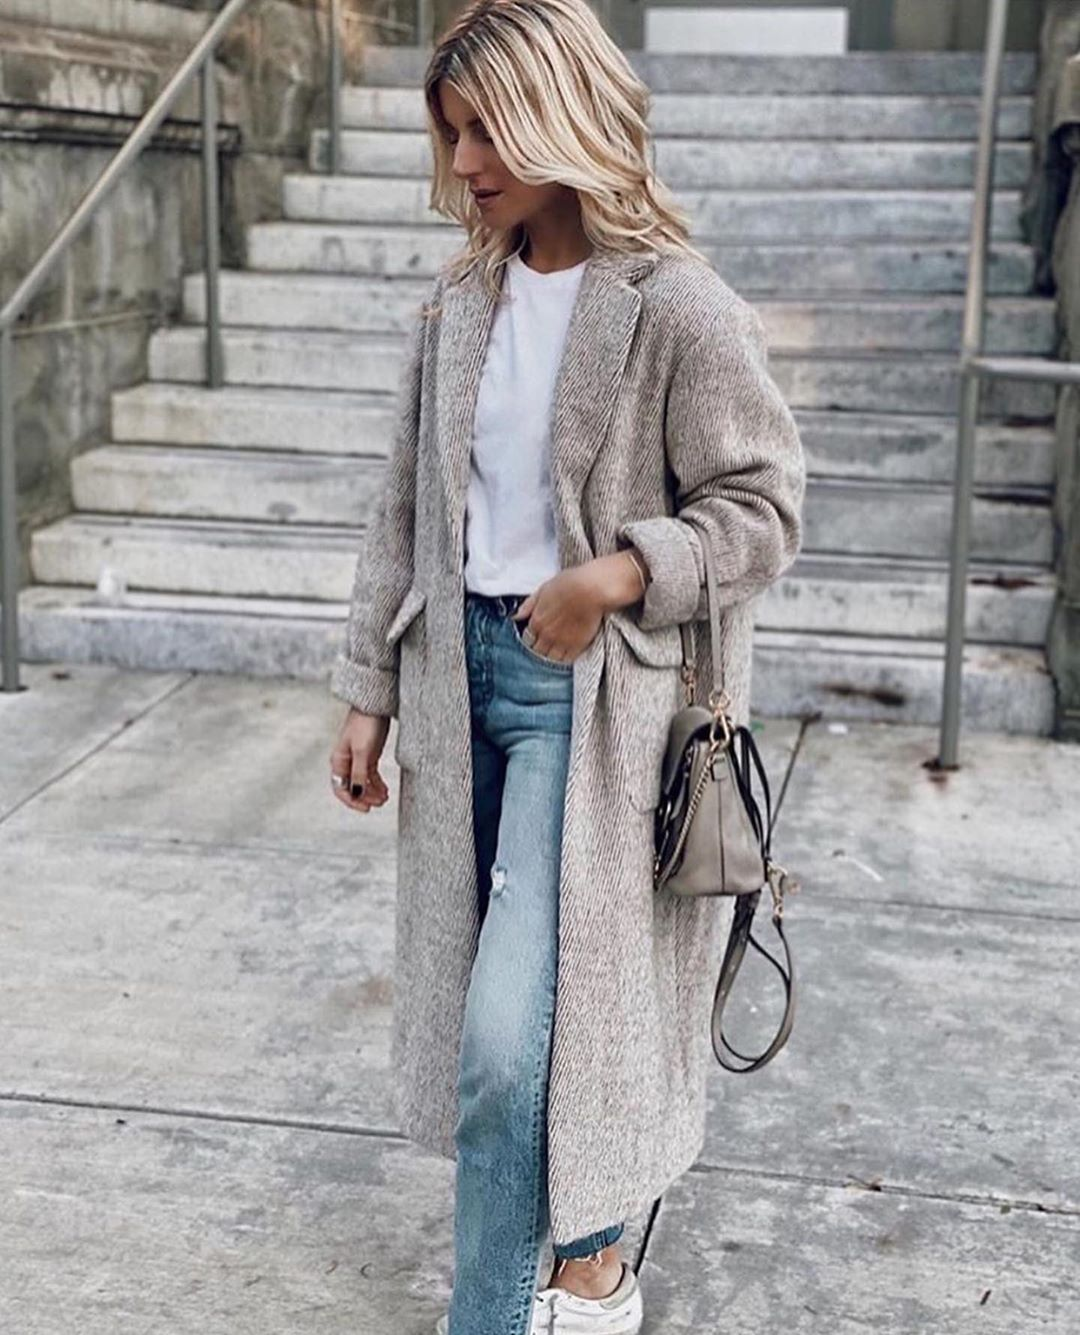 A Grey Coat is a Fall/Winter Style Essential